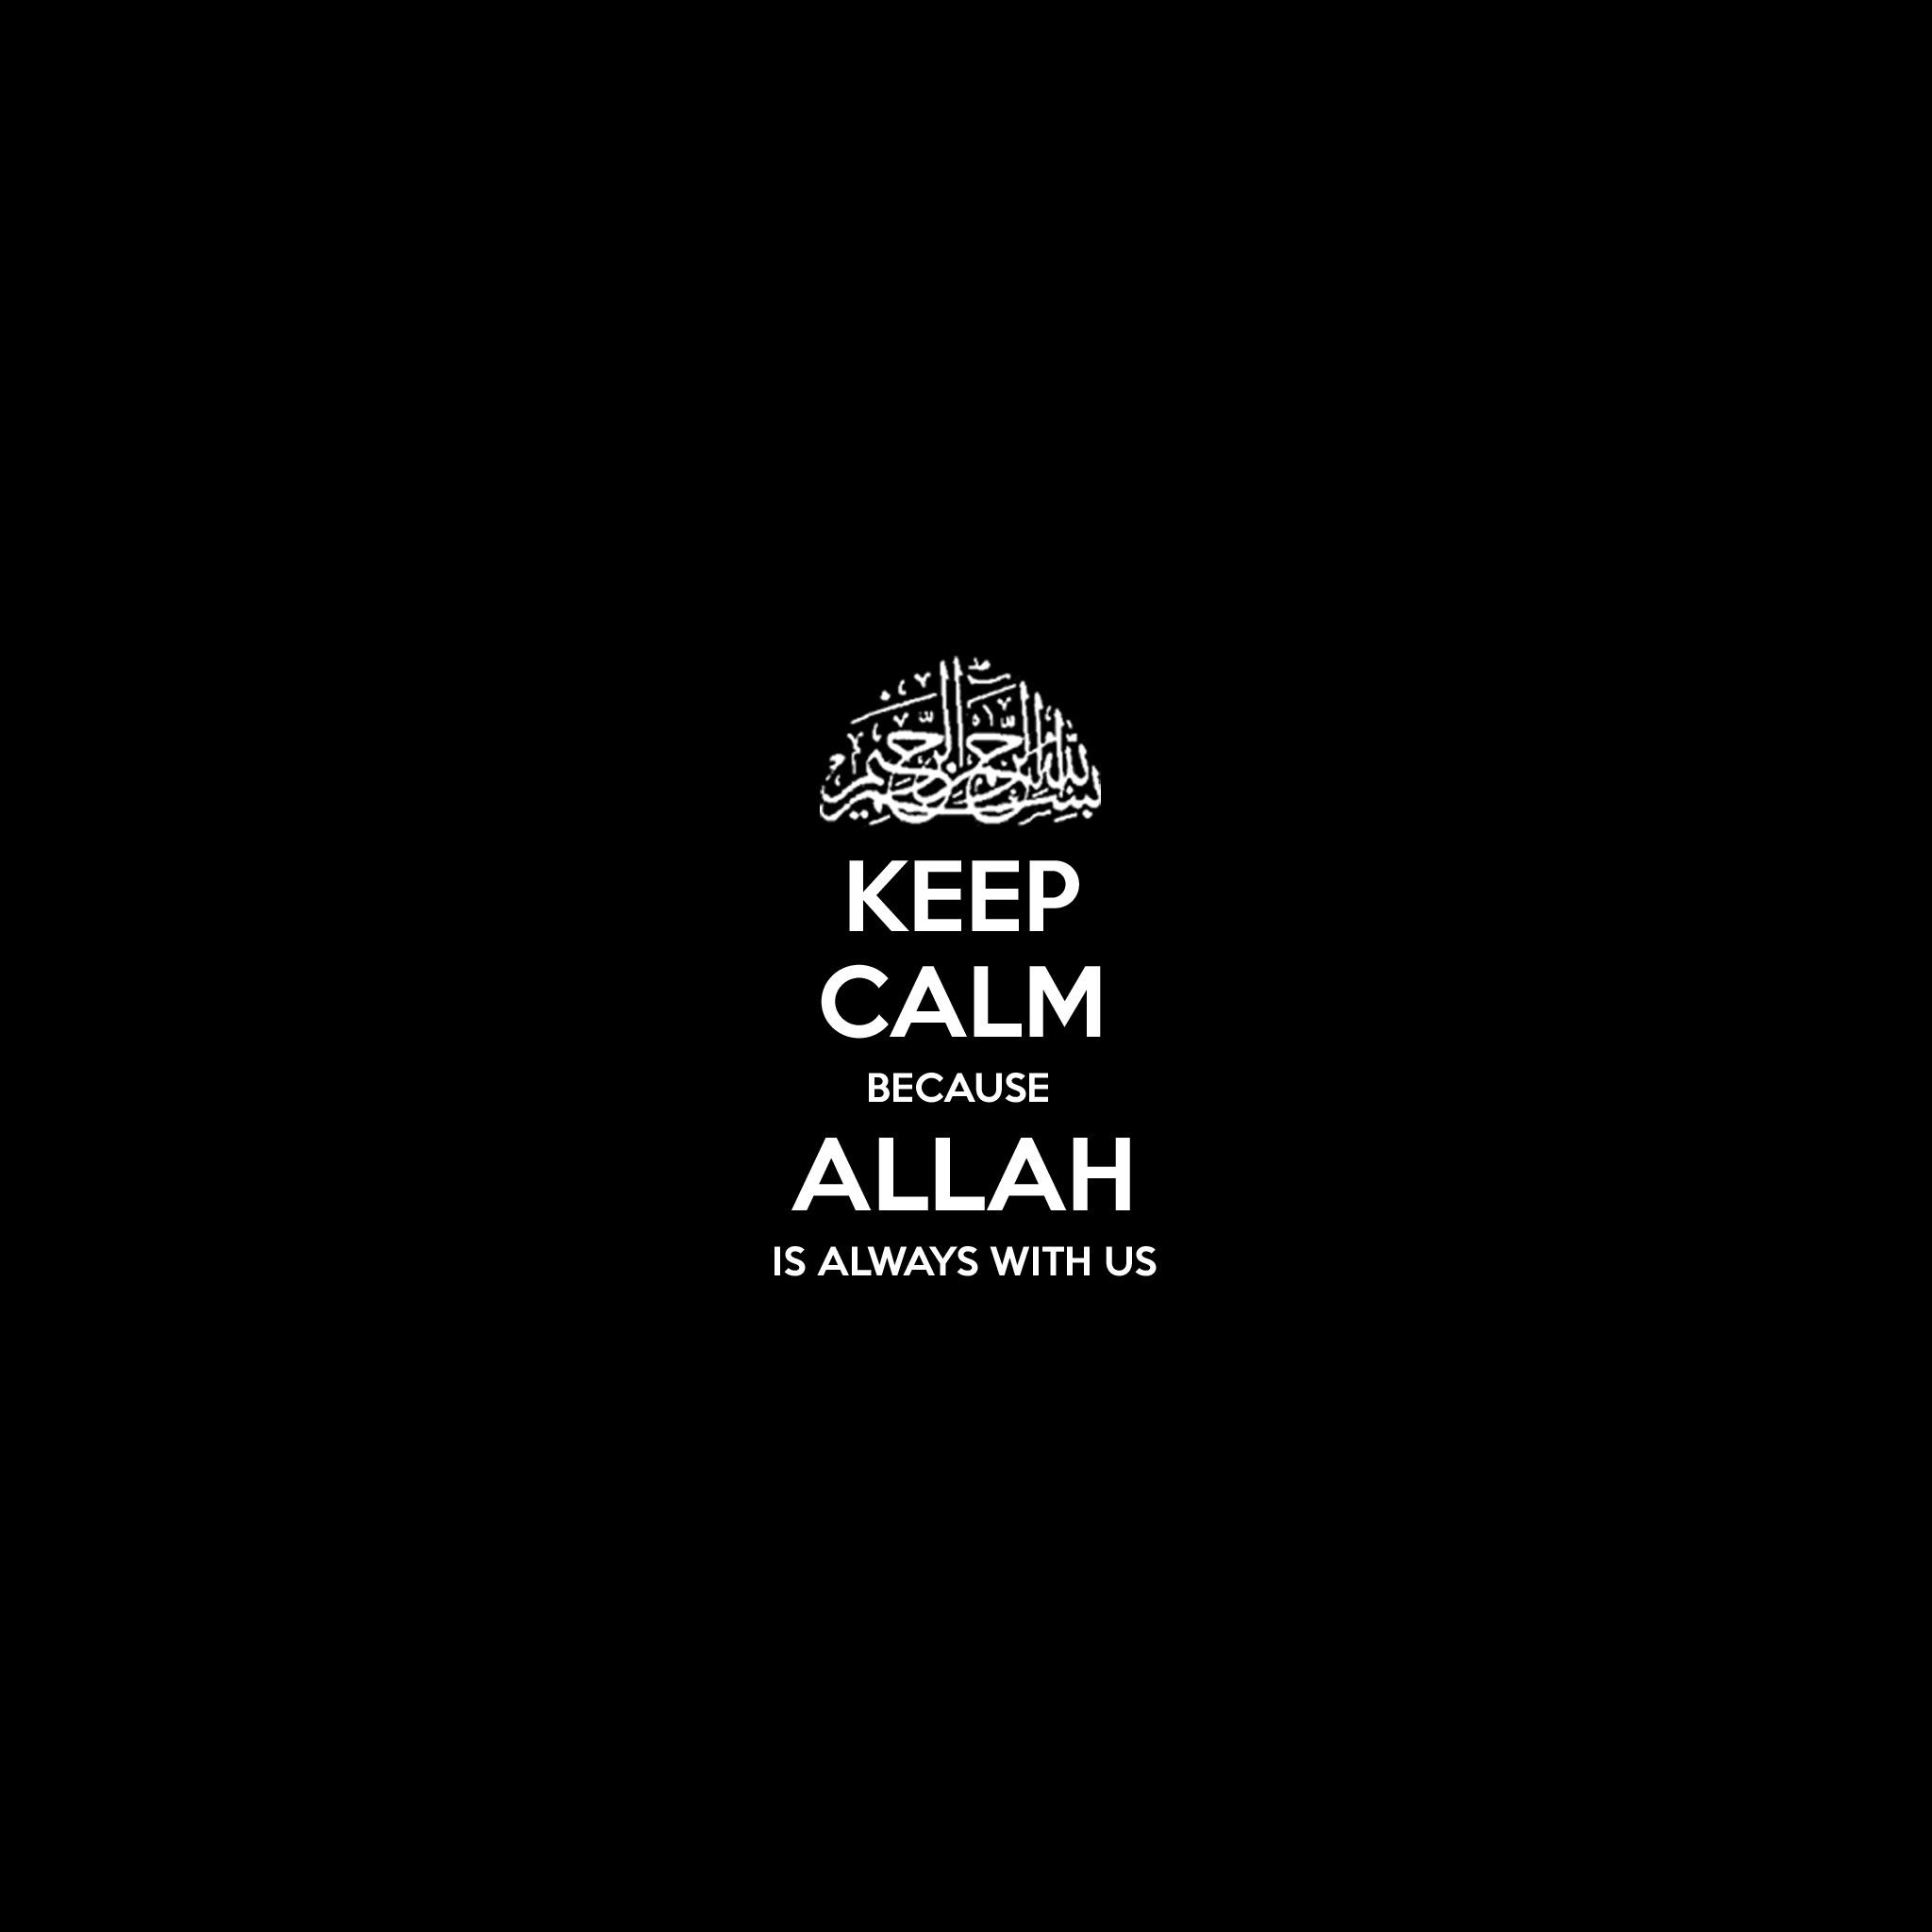 Islamic Quotes Hd Images: Keep Calm Apple IPhone 6 Hd Wallpapers Available For Free